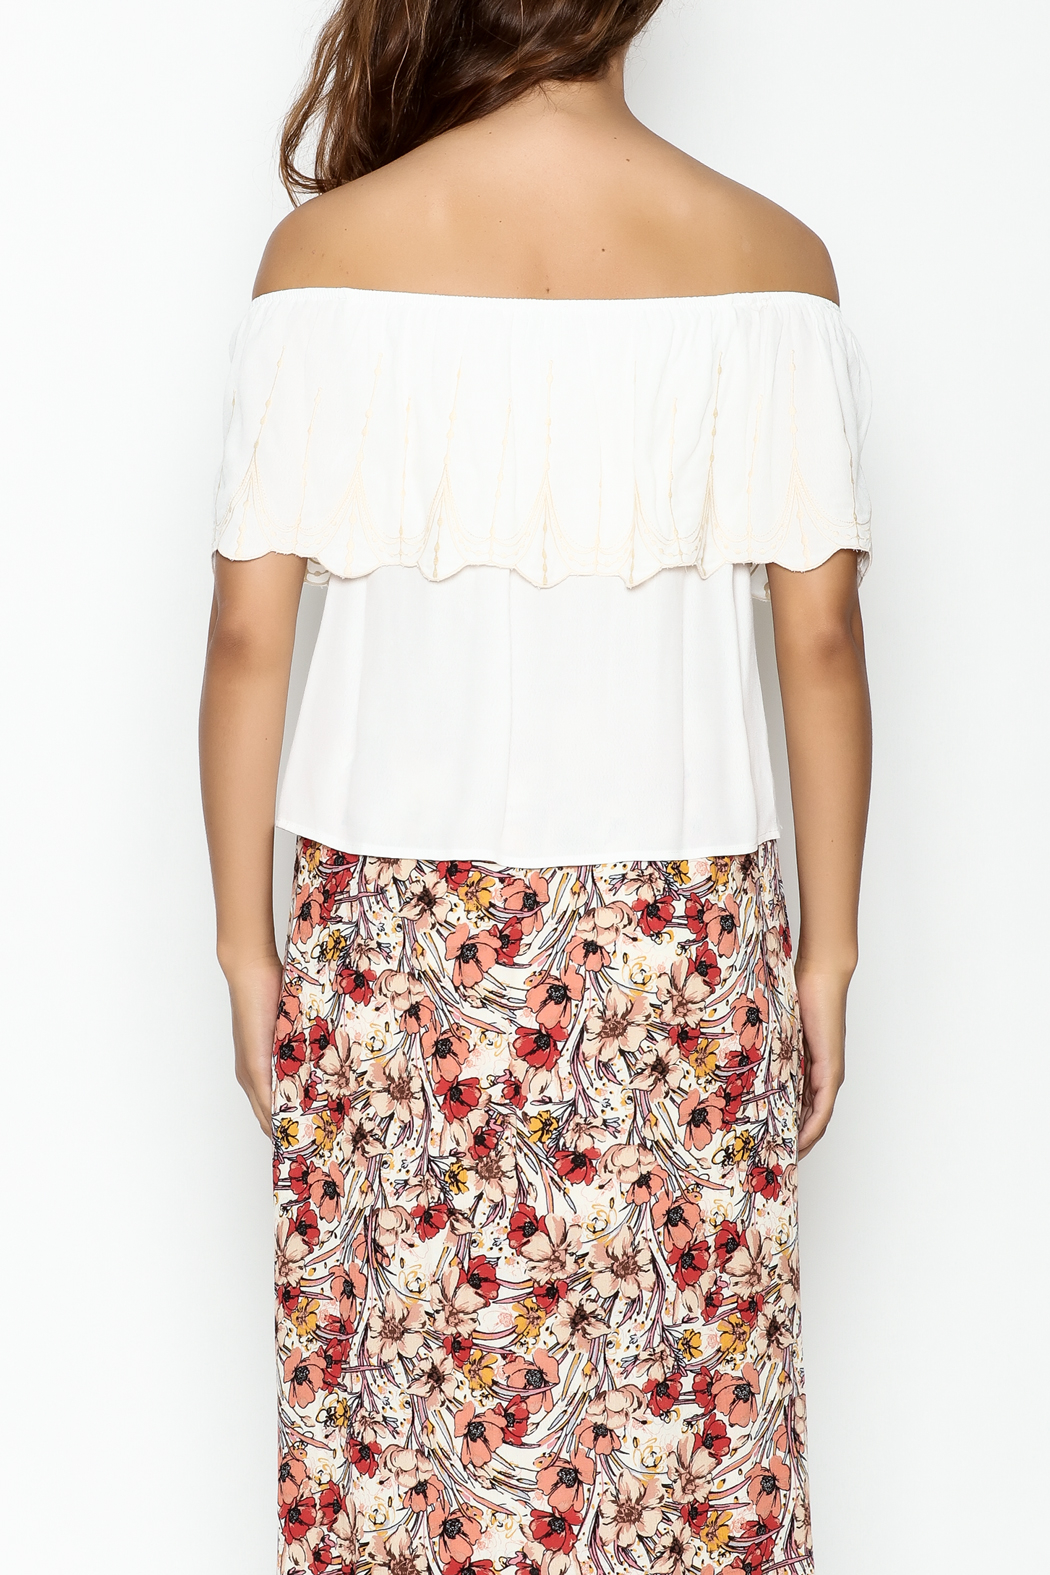 y&i clothing boutique Reese Scallop Top - Back Cropped Image